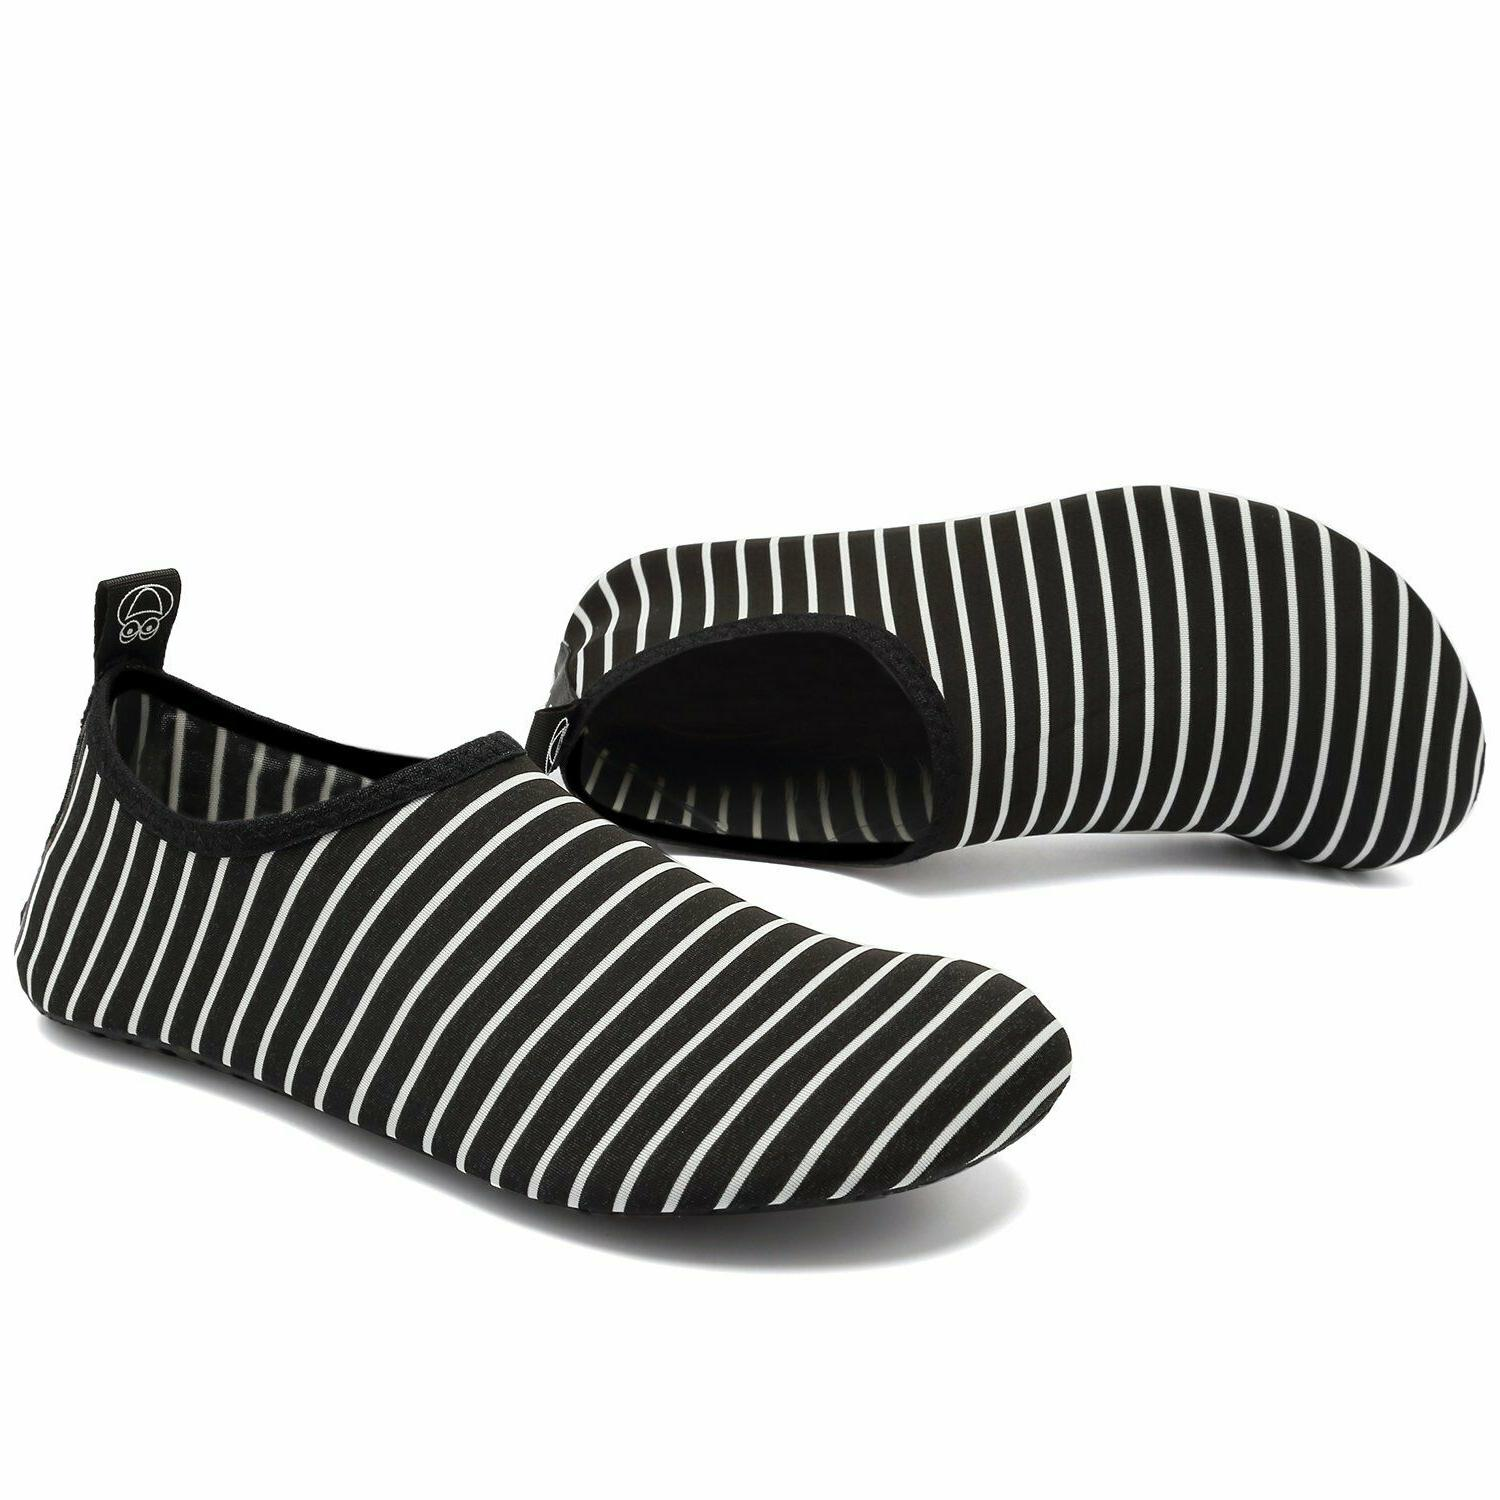 VIFUUR Water Shoes Barefoot Quick-Dry Socks Slip-on